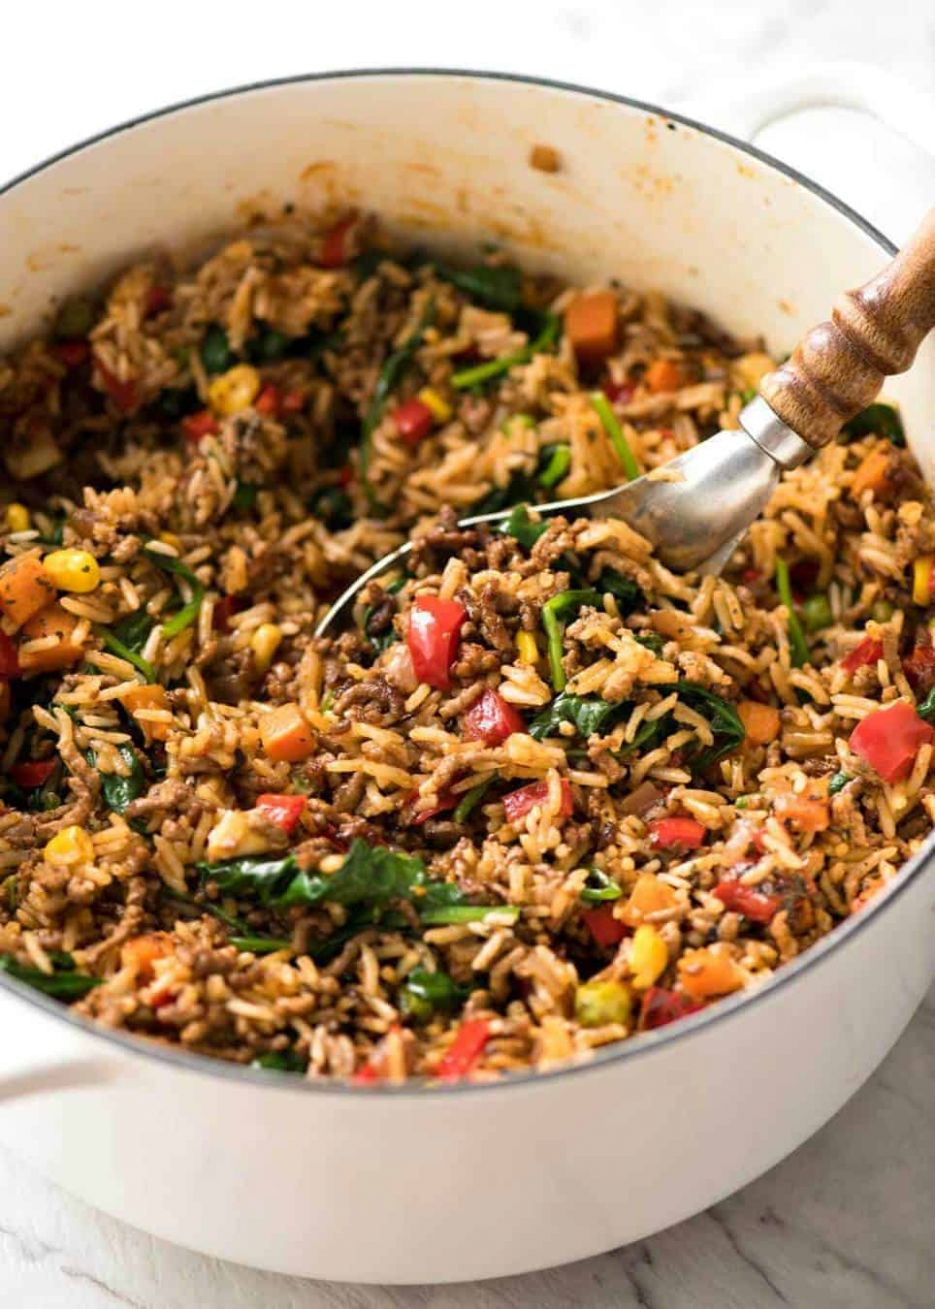 Beef and Rice with Veggies   RecipeTin Eats - Recipes Beef And Rice